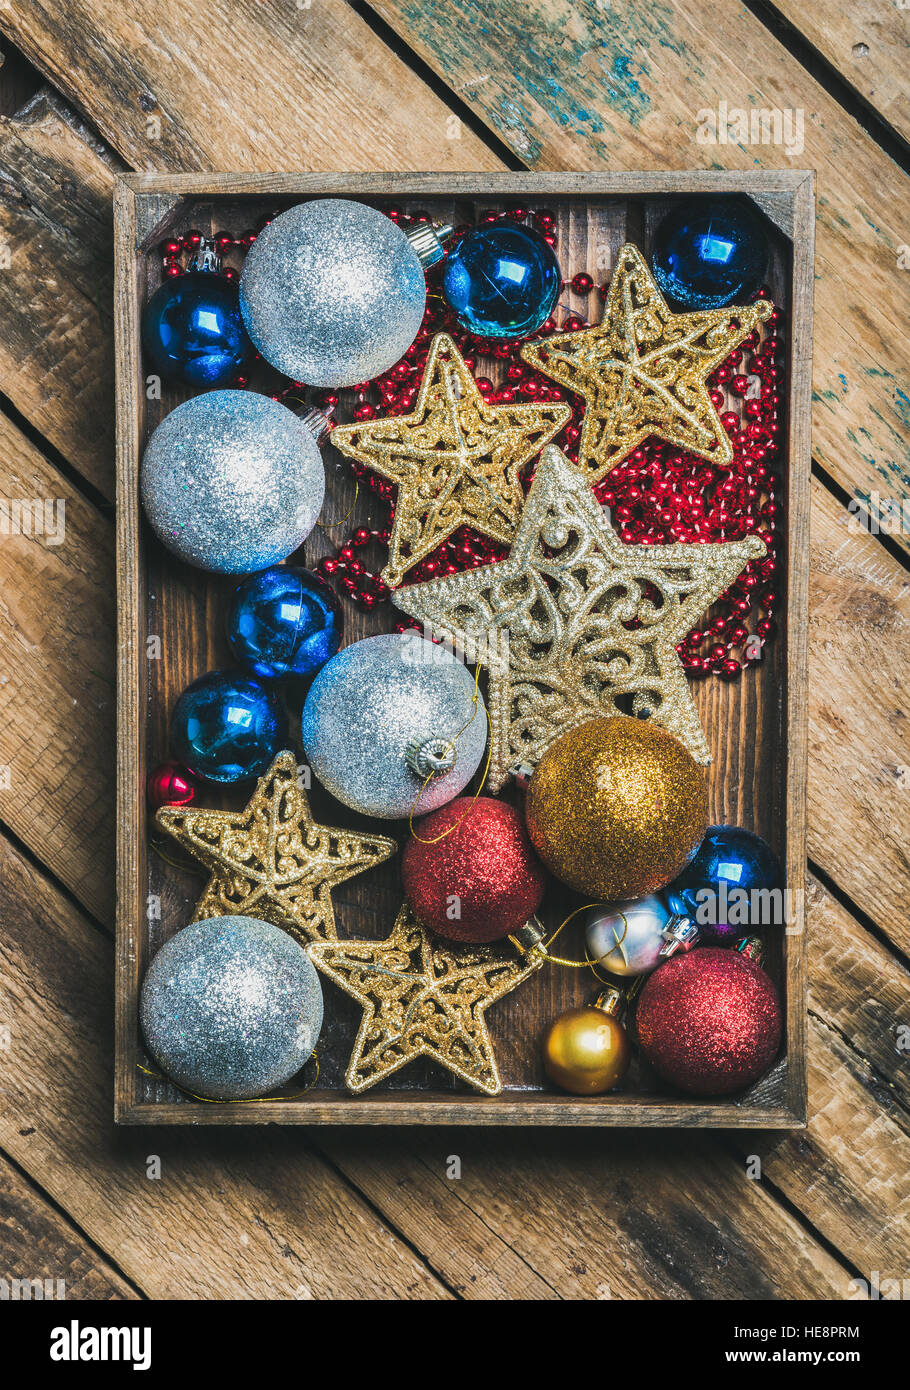 Christmas tree toy stars, balls and garland in wooden box - Stock Image